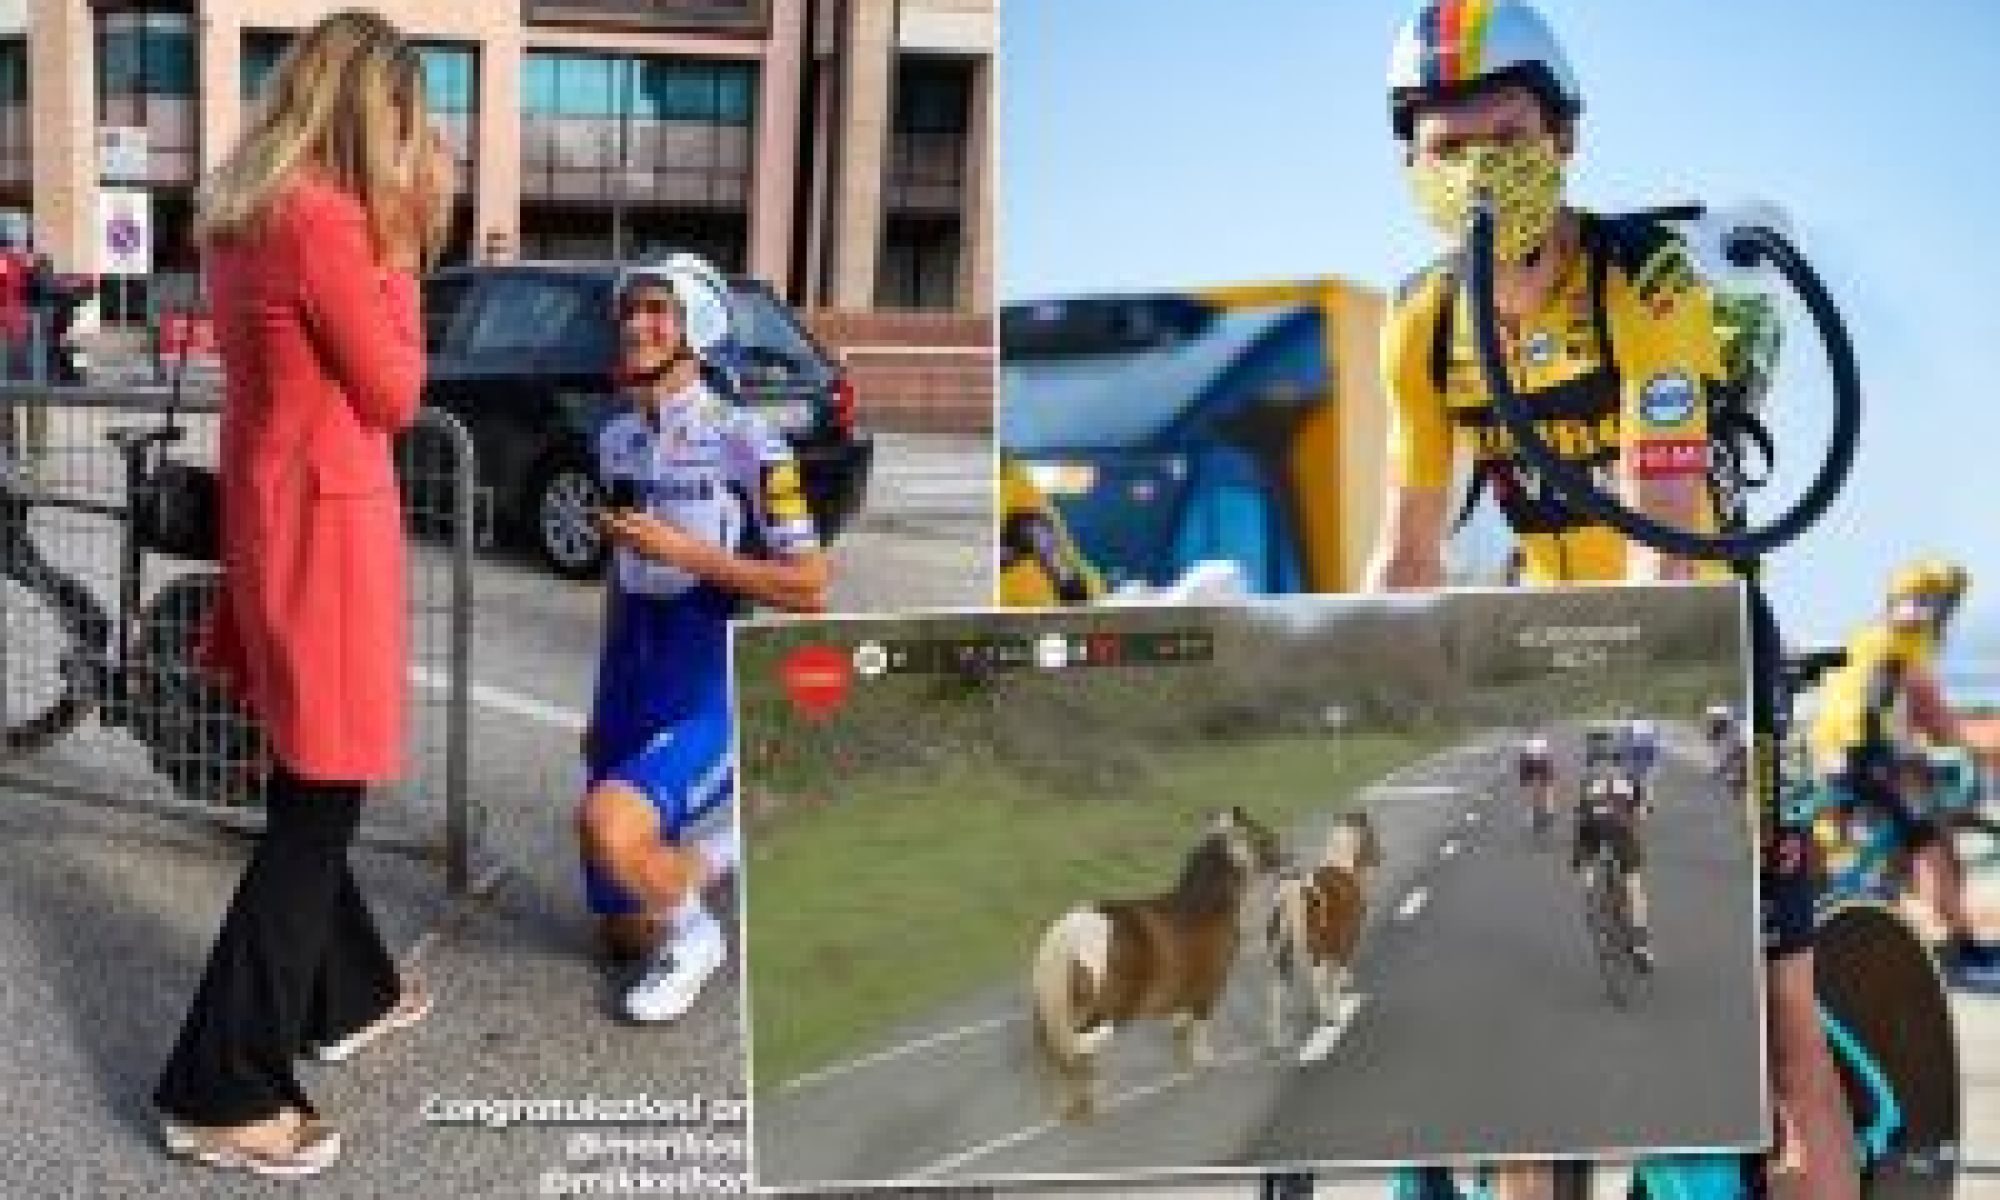 Tweets of the week: Proposals, protests and ponies